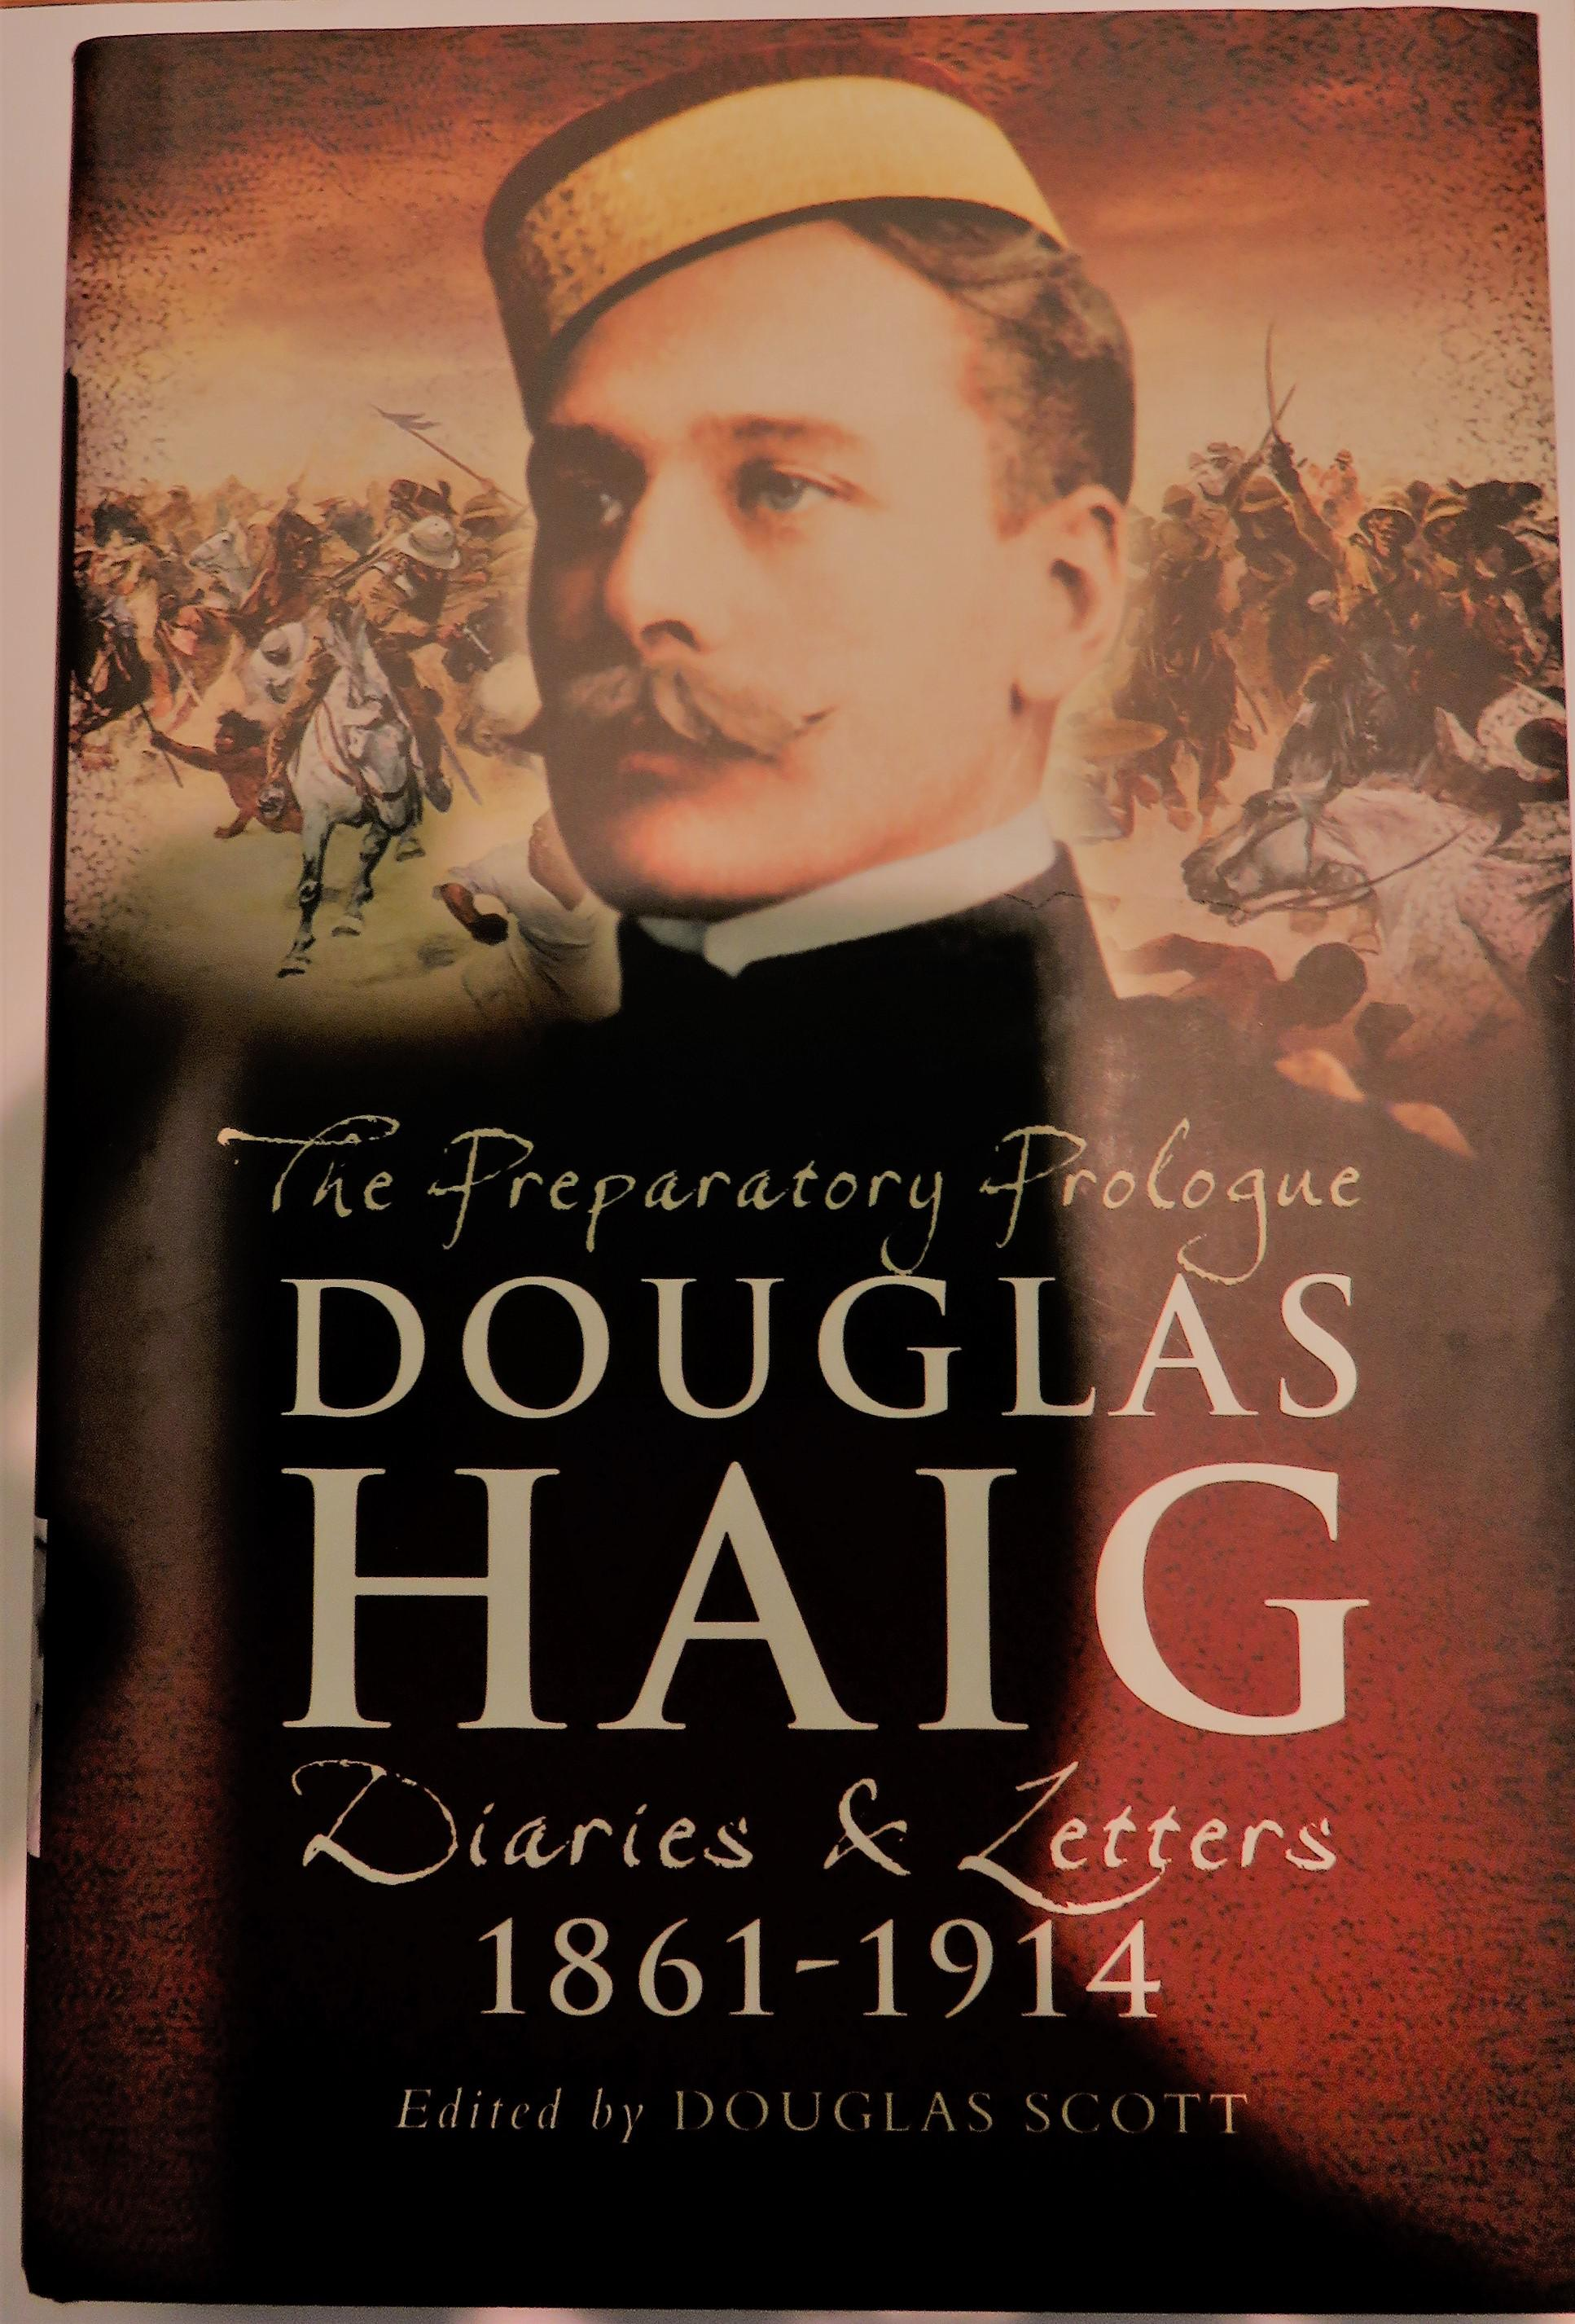 Douglas Haig, The Preparatory Prologue 1861-1914, Diaries and Letters